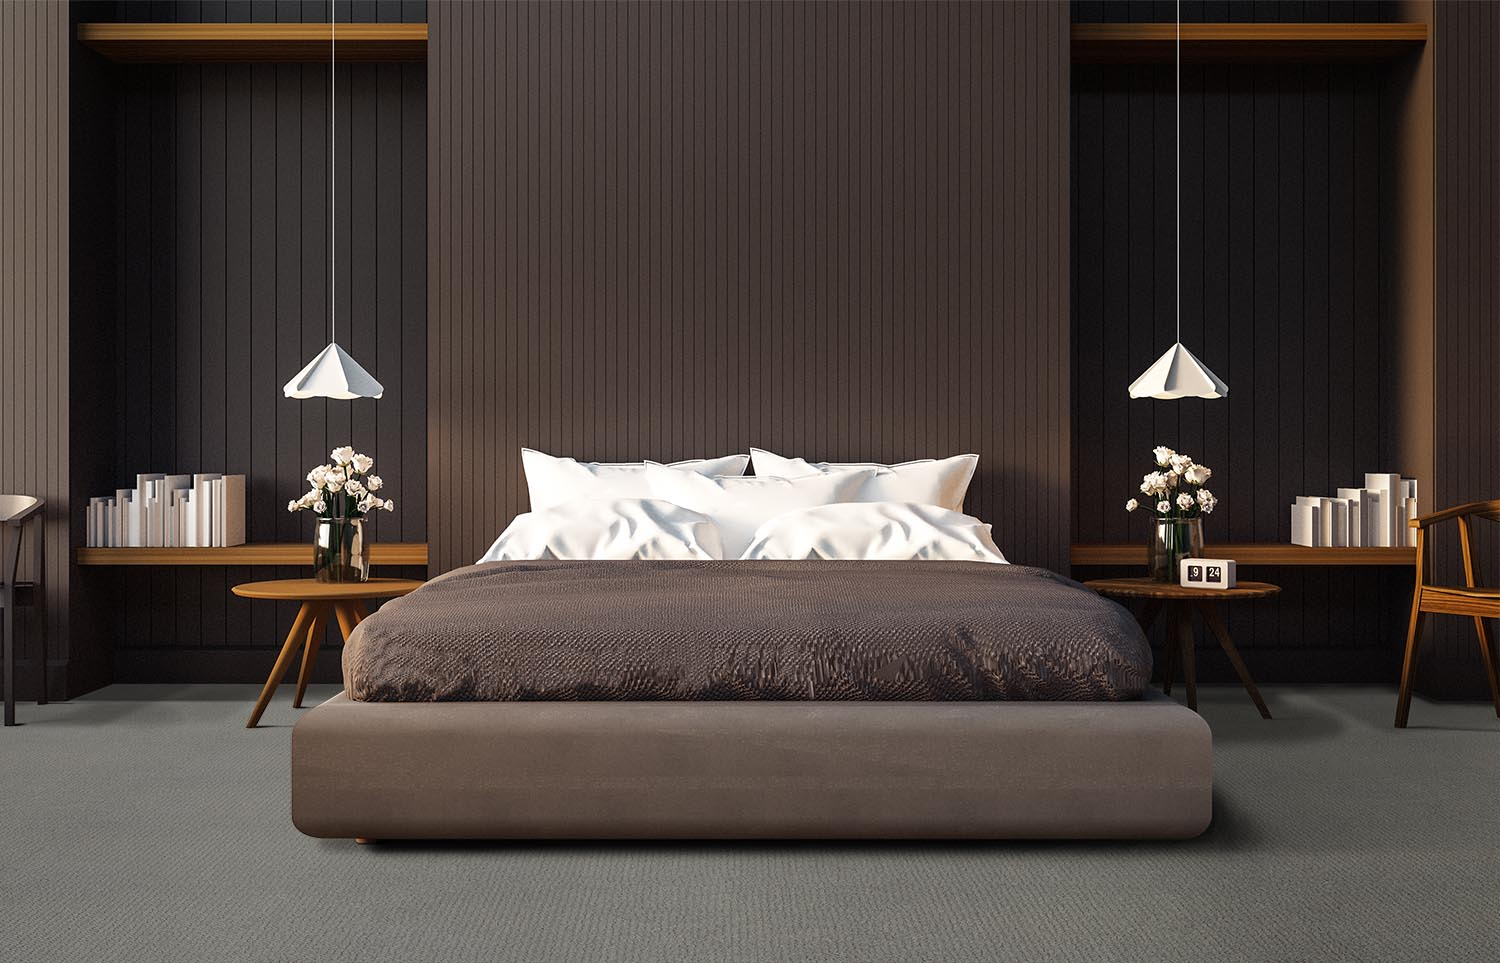 Immerse - Let Go contemporary bedroom